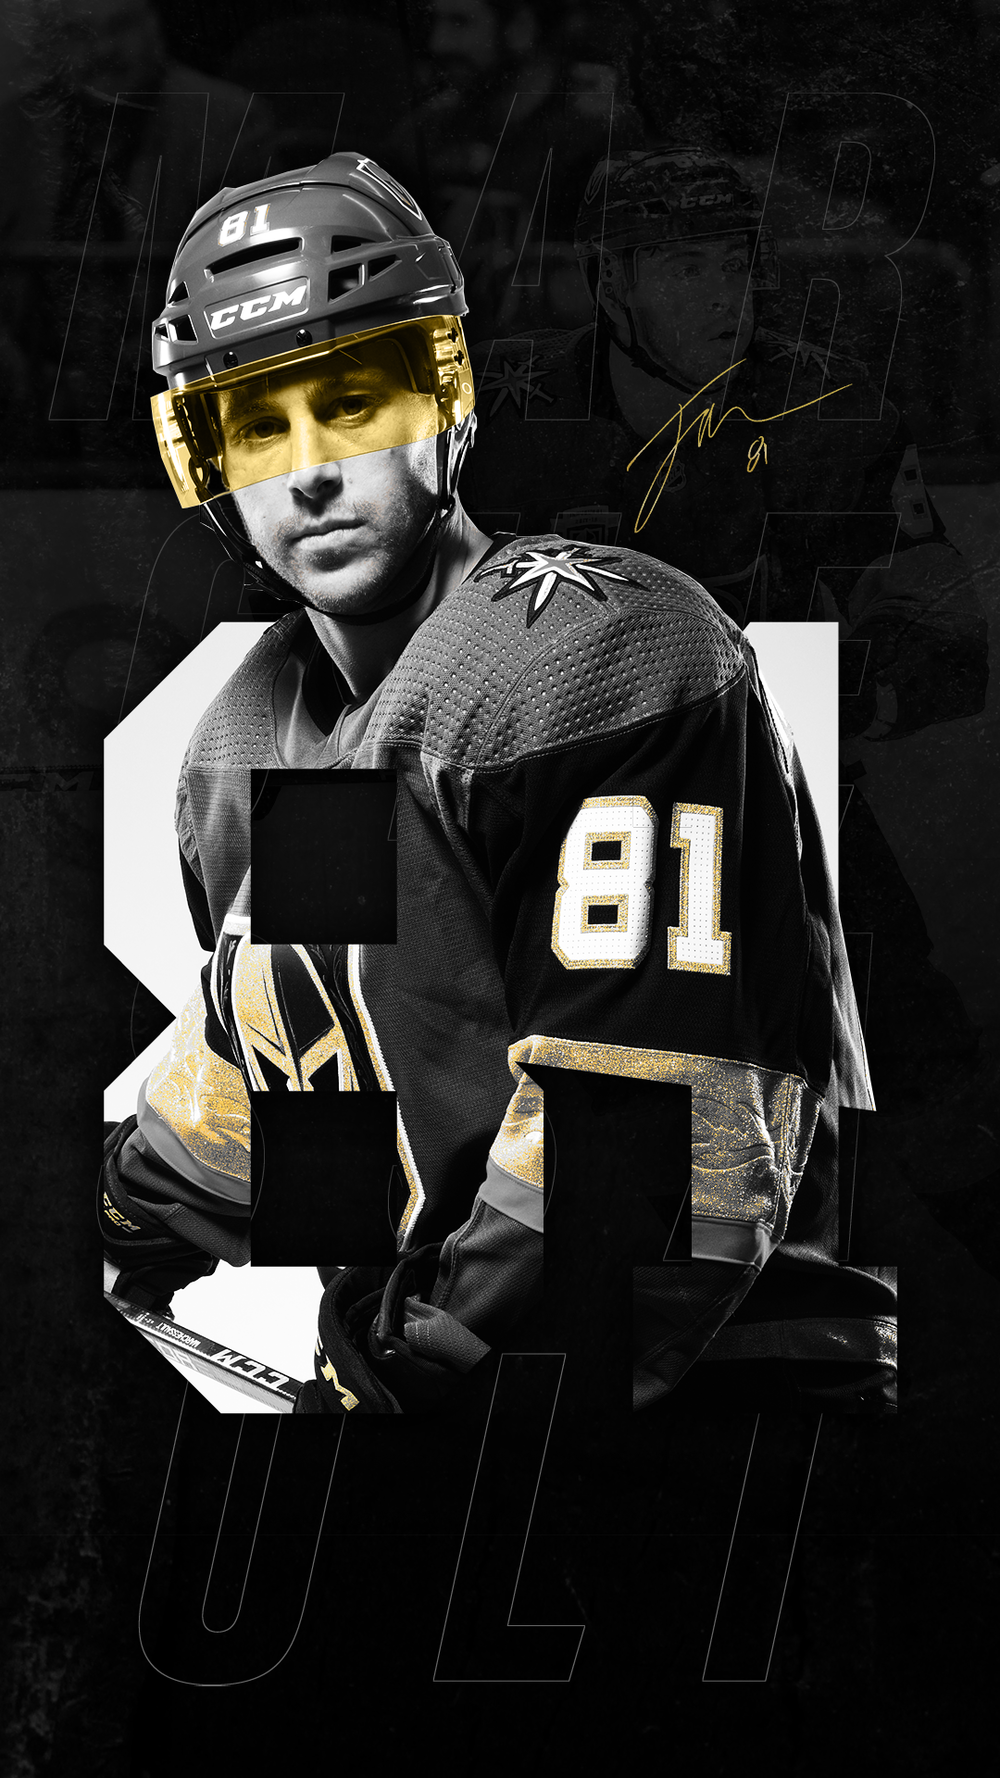 Marchy.png